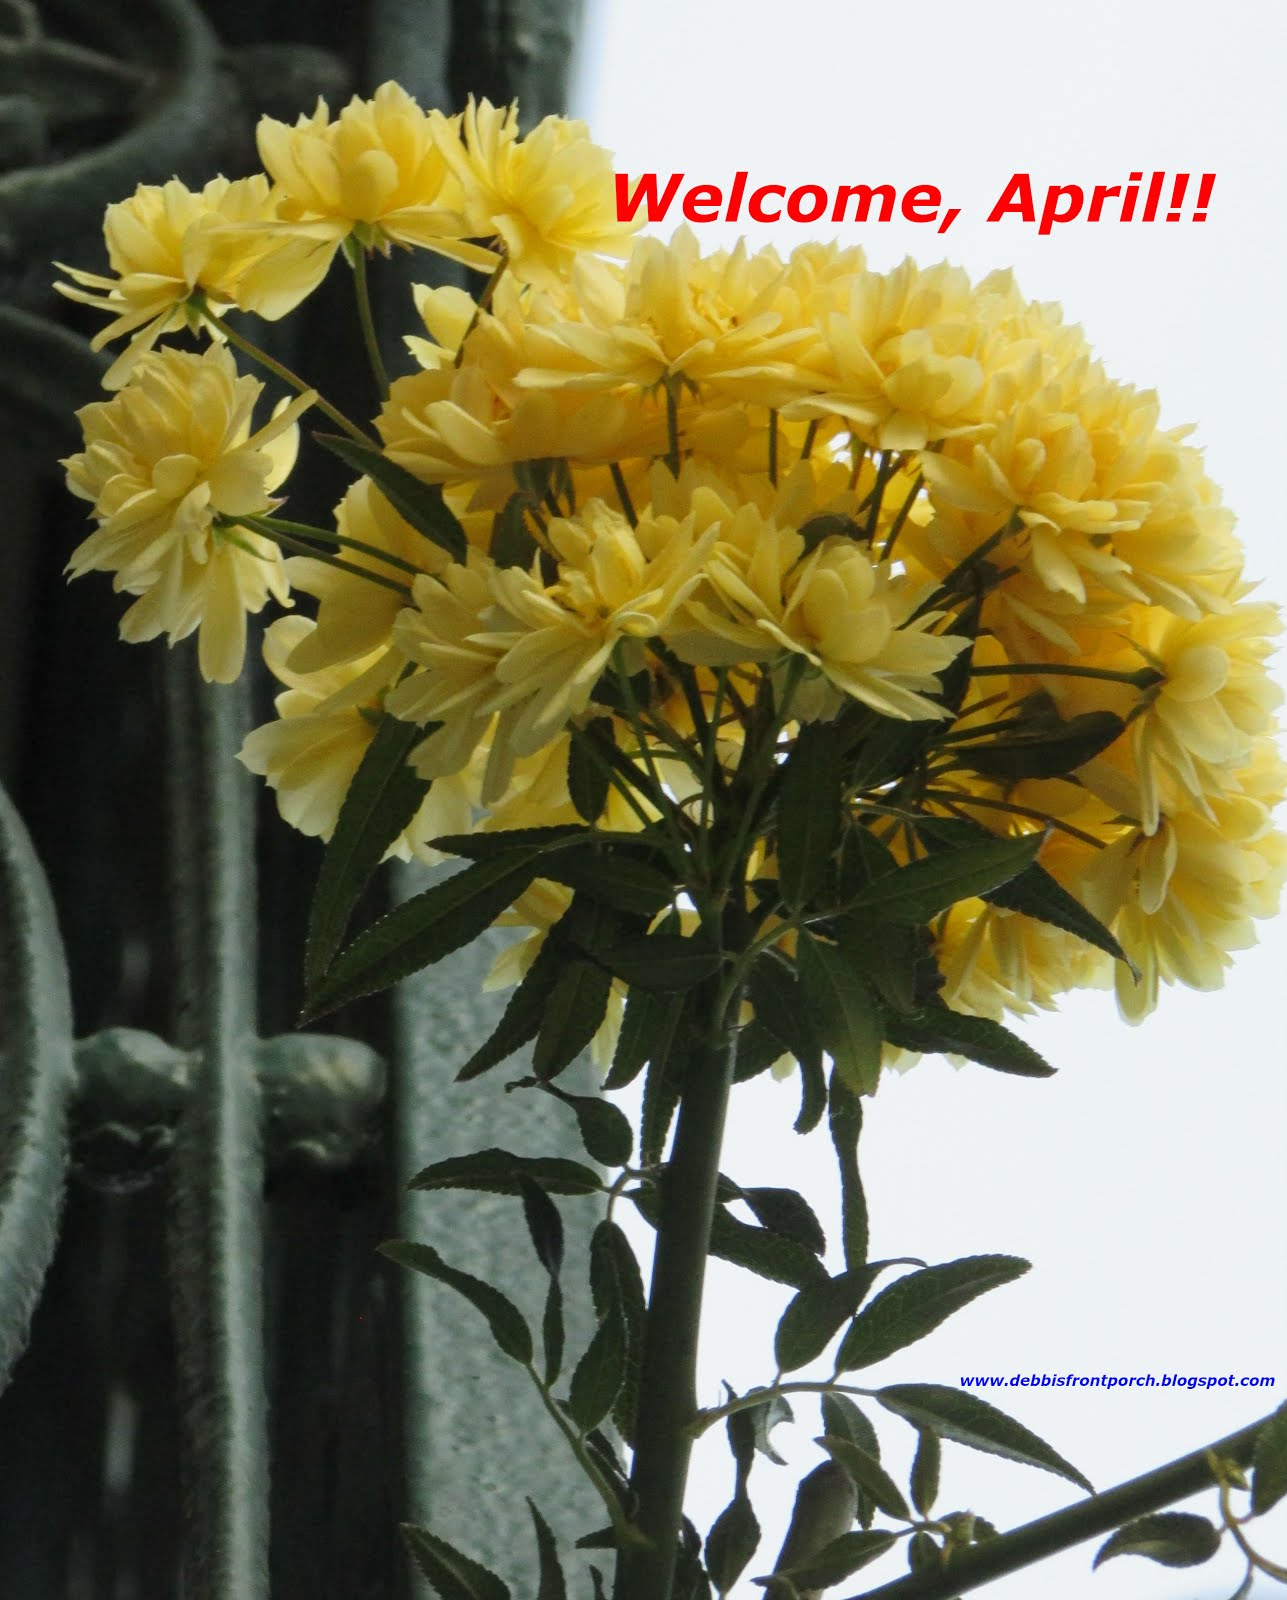 Finally...April's back!